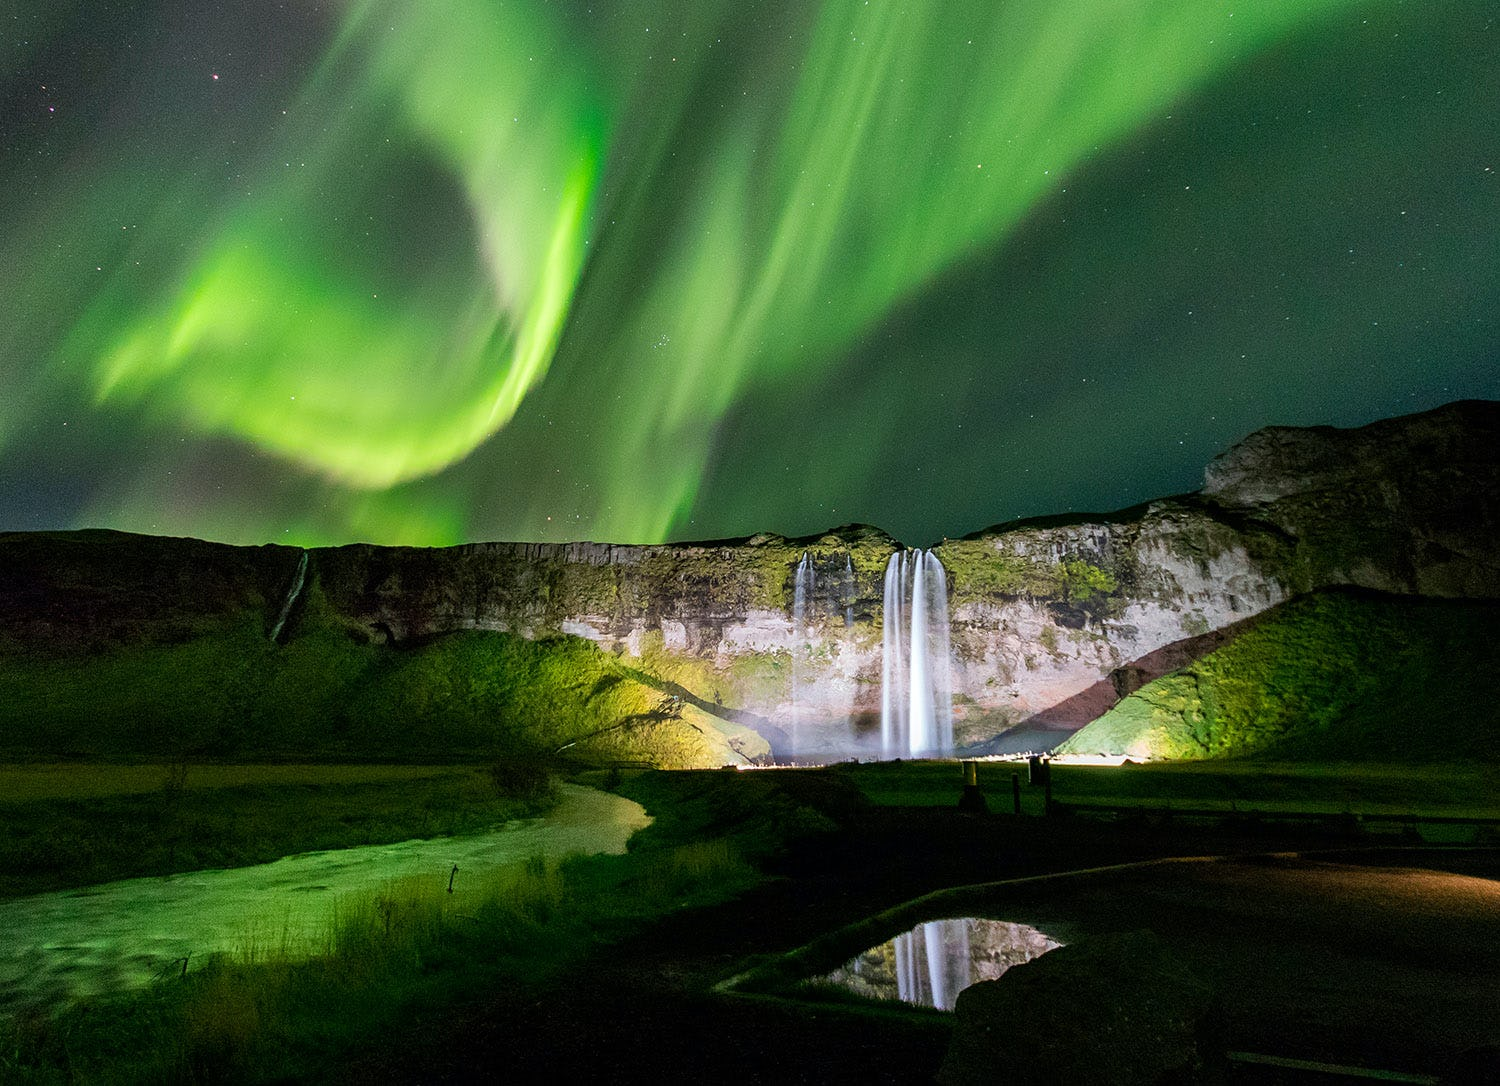 Seljalandsfoss is a spectacular waterfall, especially under the Northern Lights.